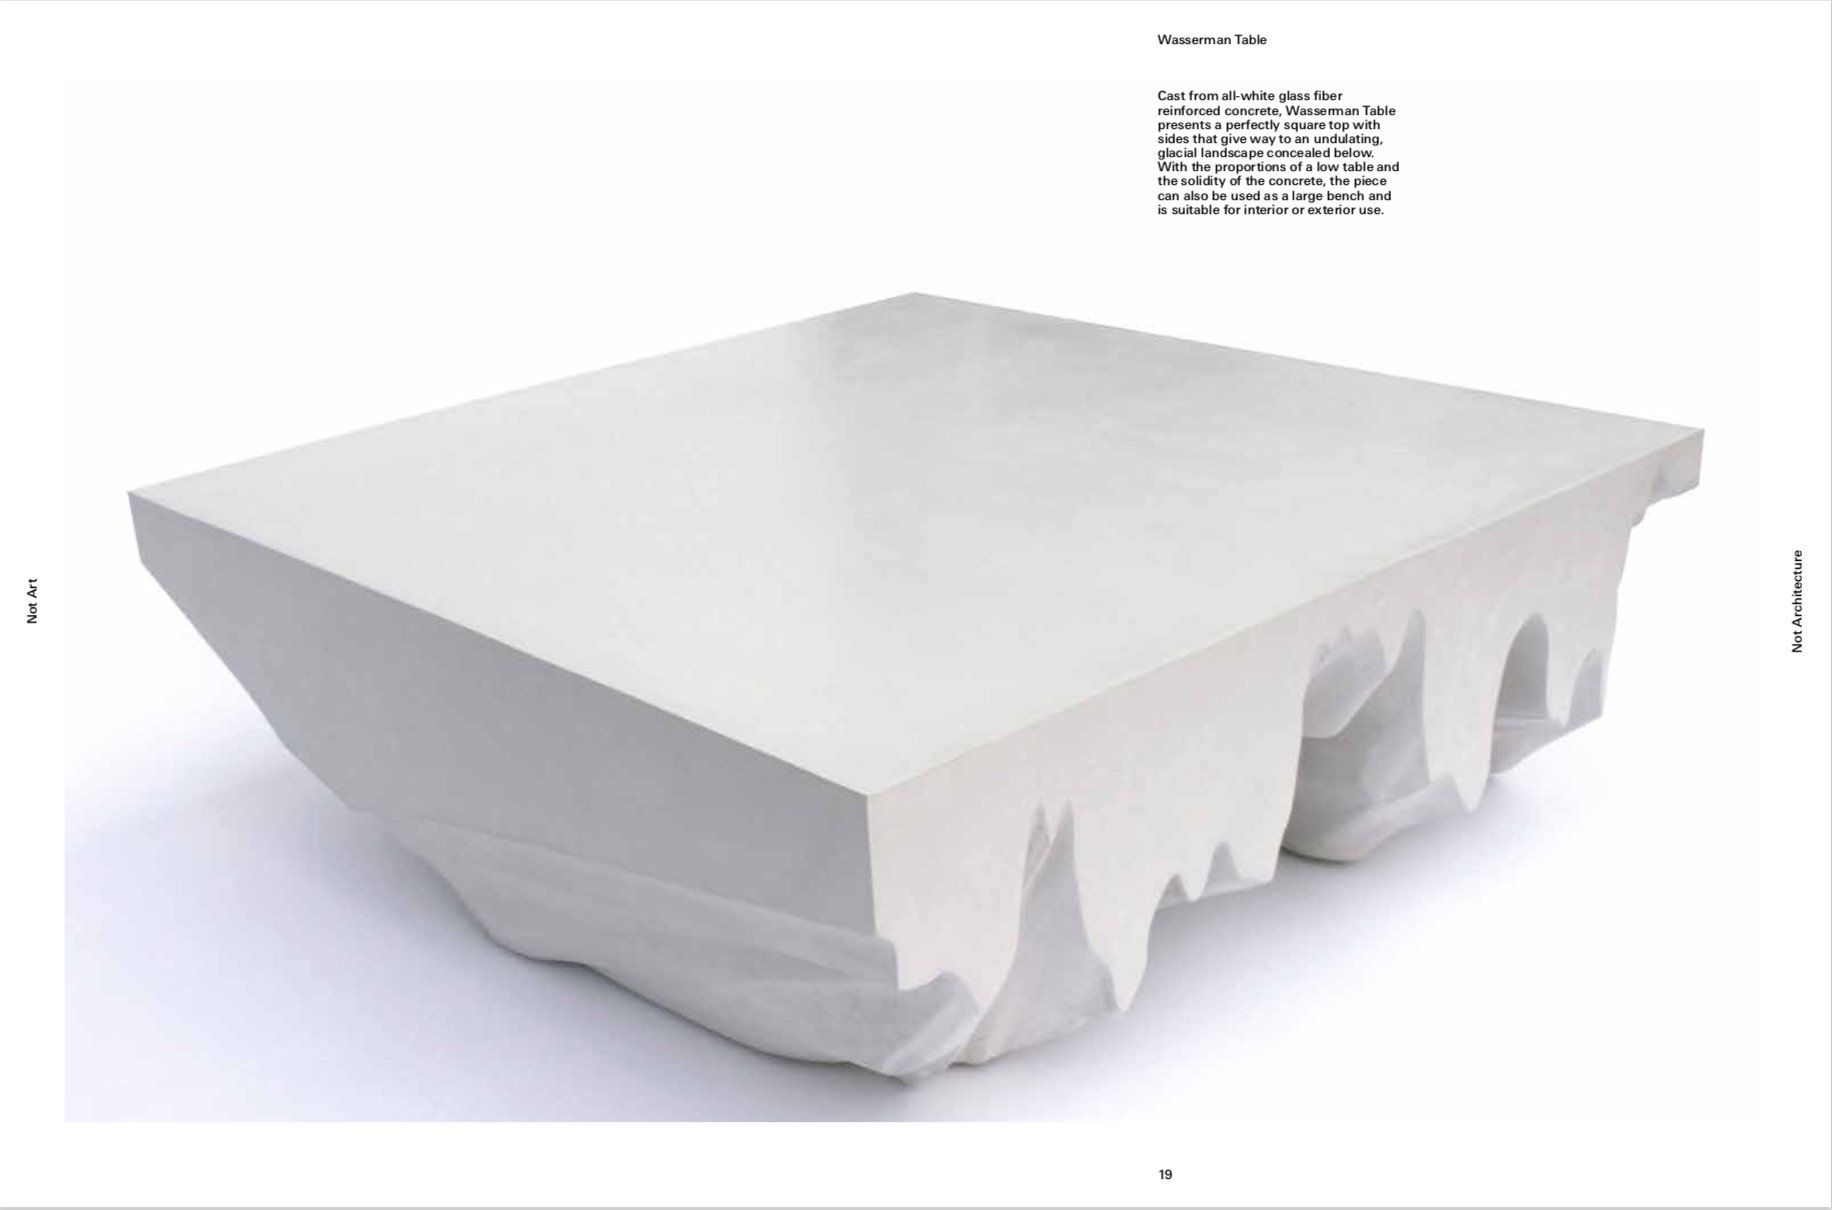 By Snarkitecture from Snarkitecture copyright Phaidon 2018